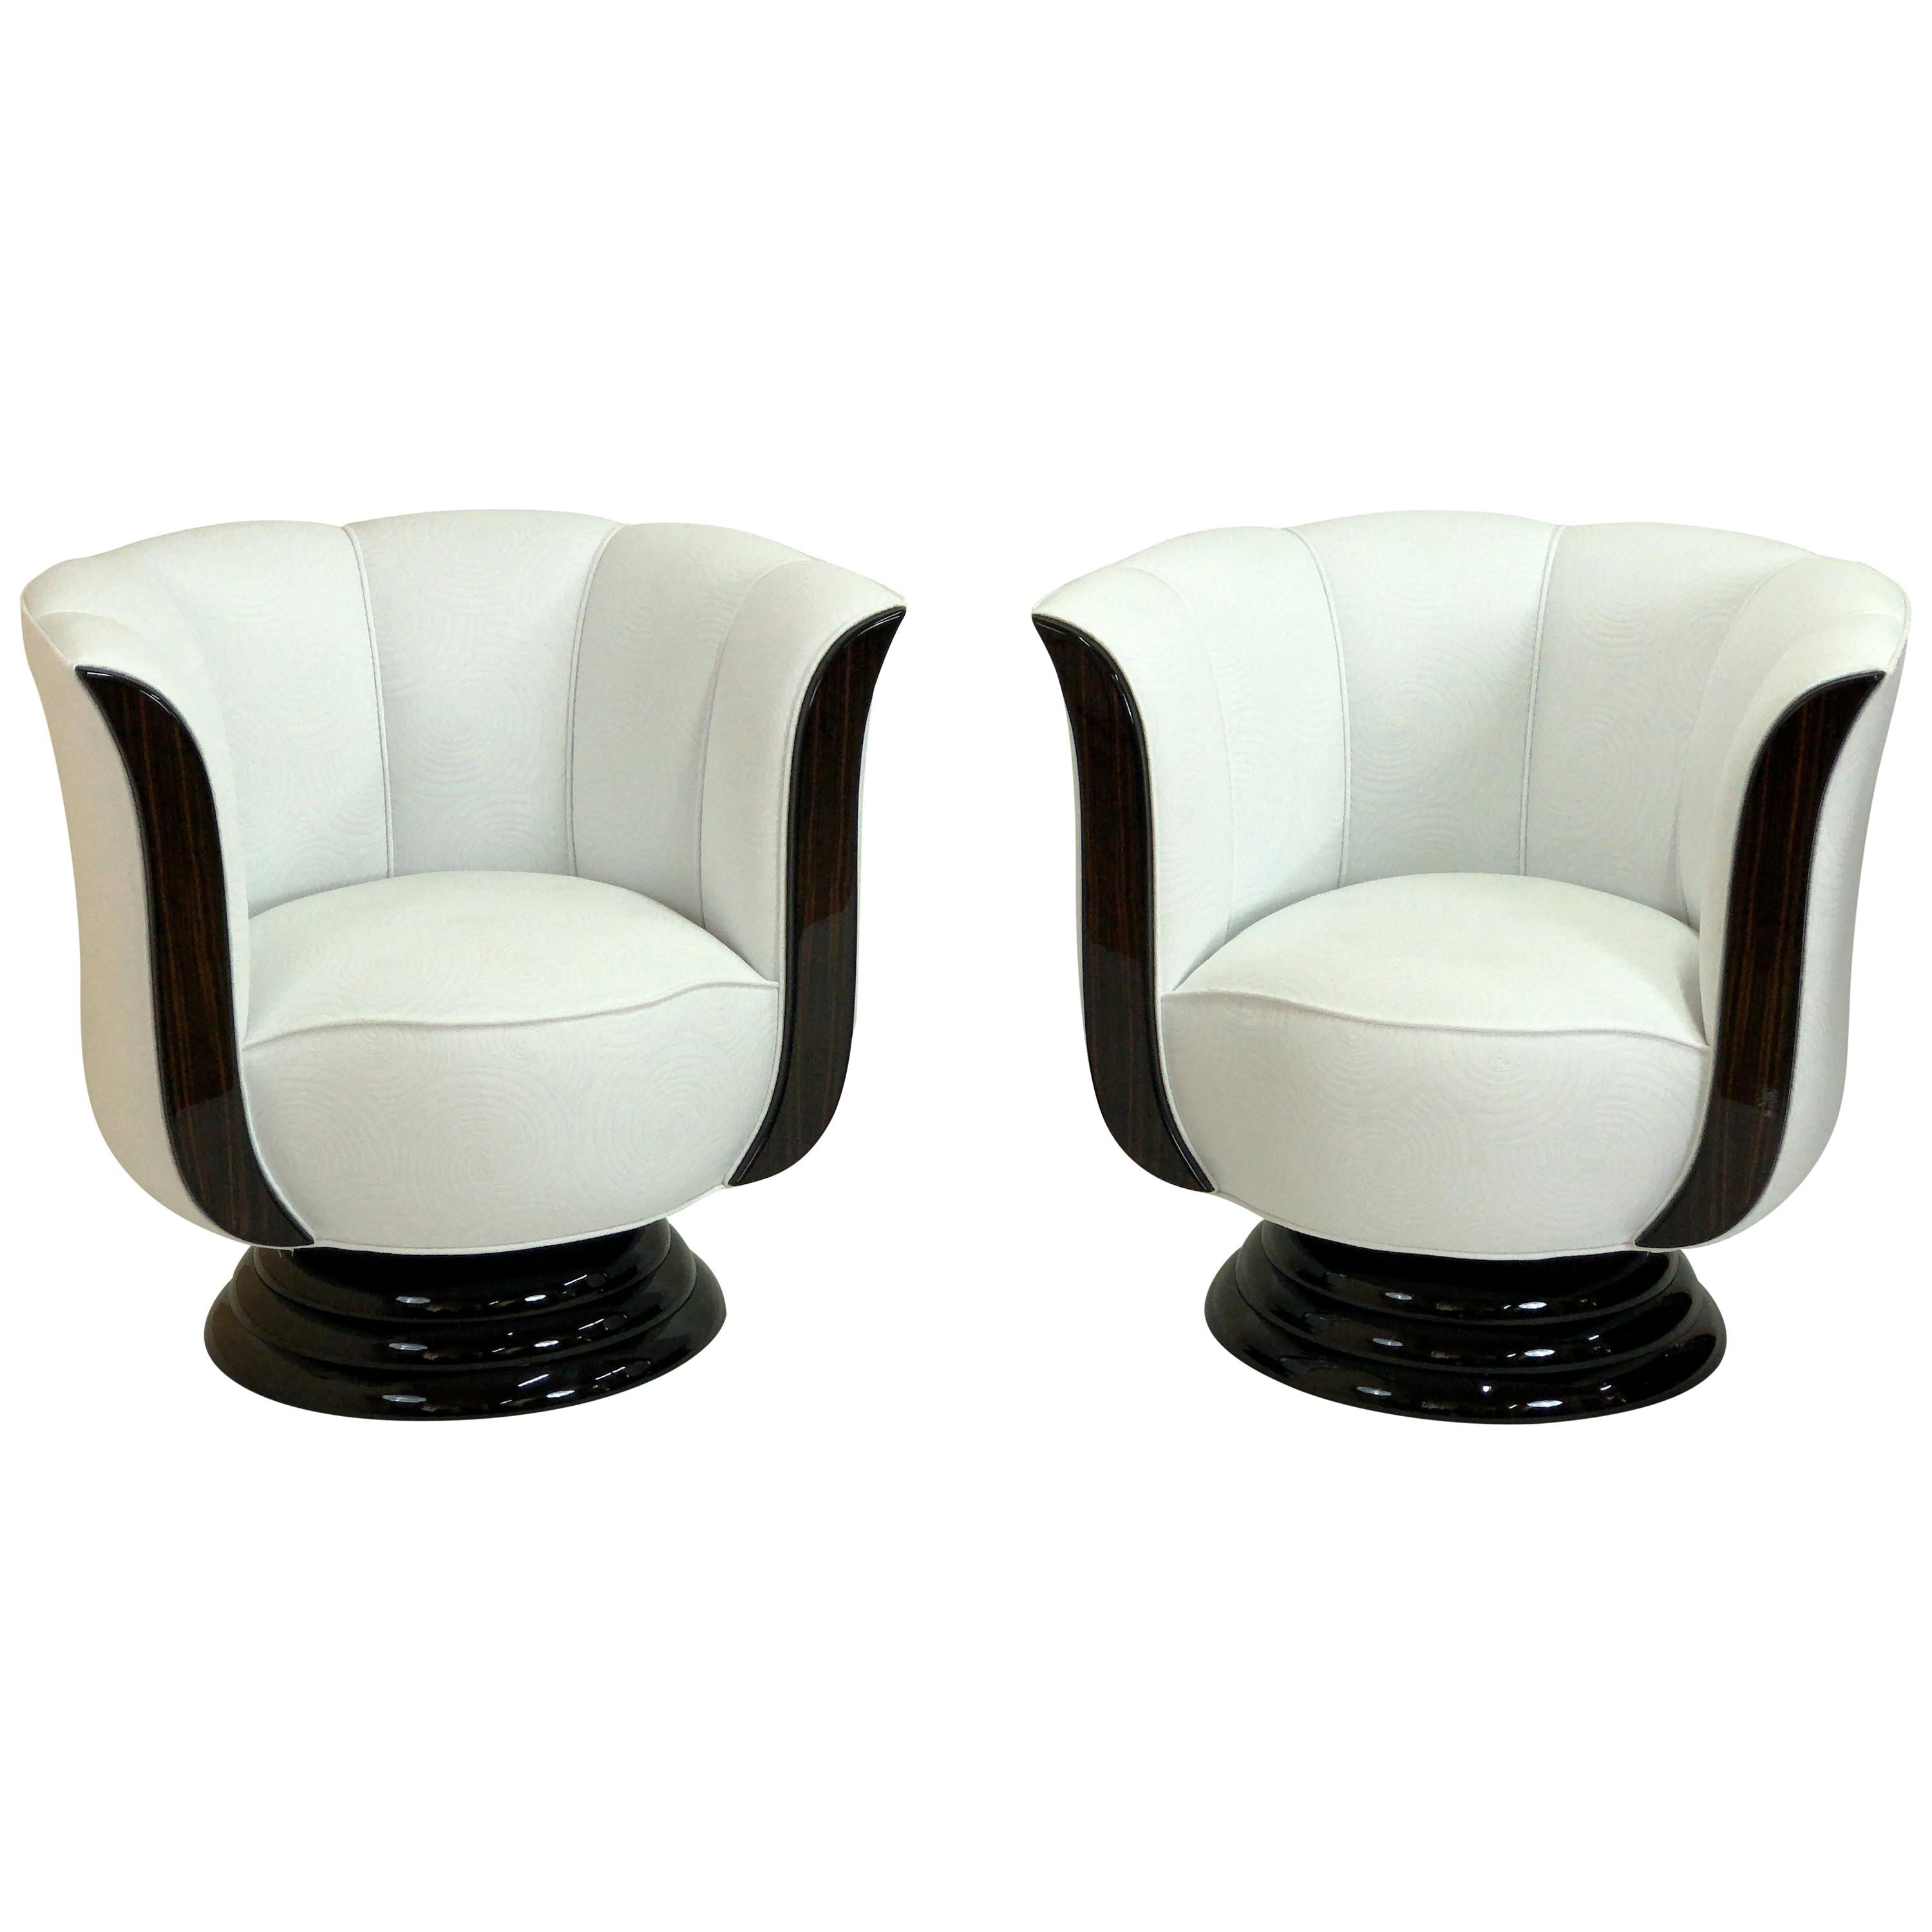 Pair of Revolving White and Macassar Art Deco Style Tulip Shaped Club Chairs